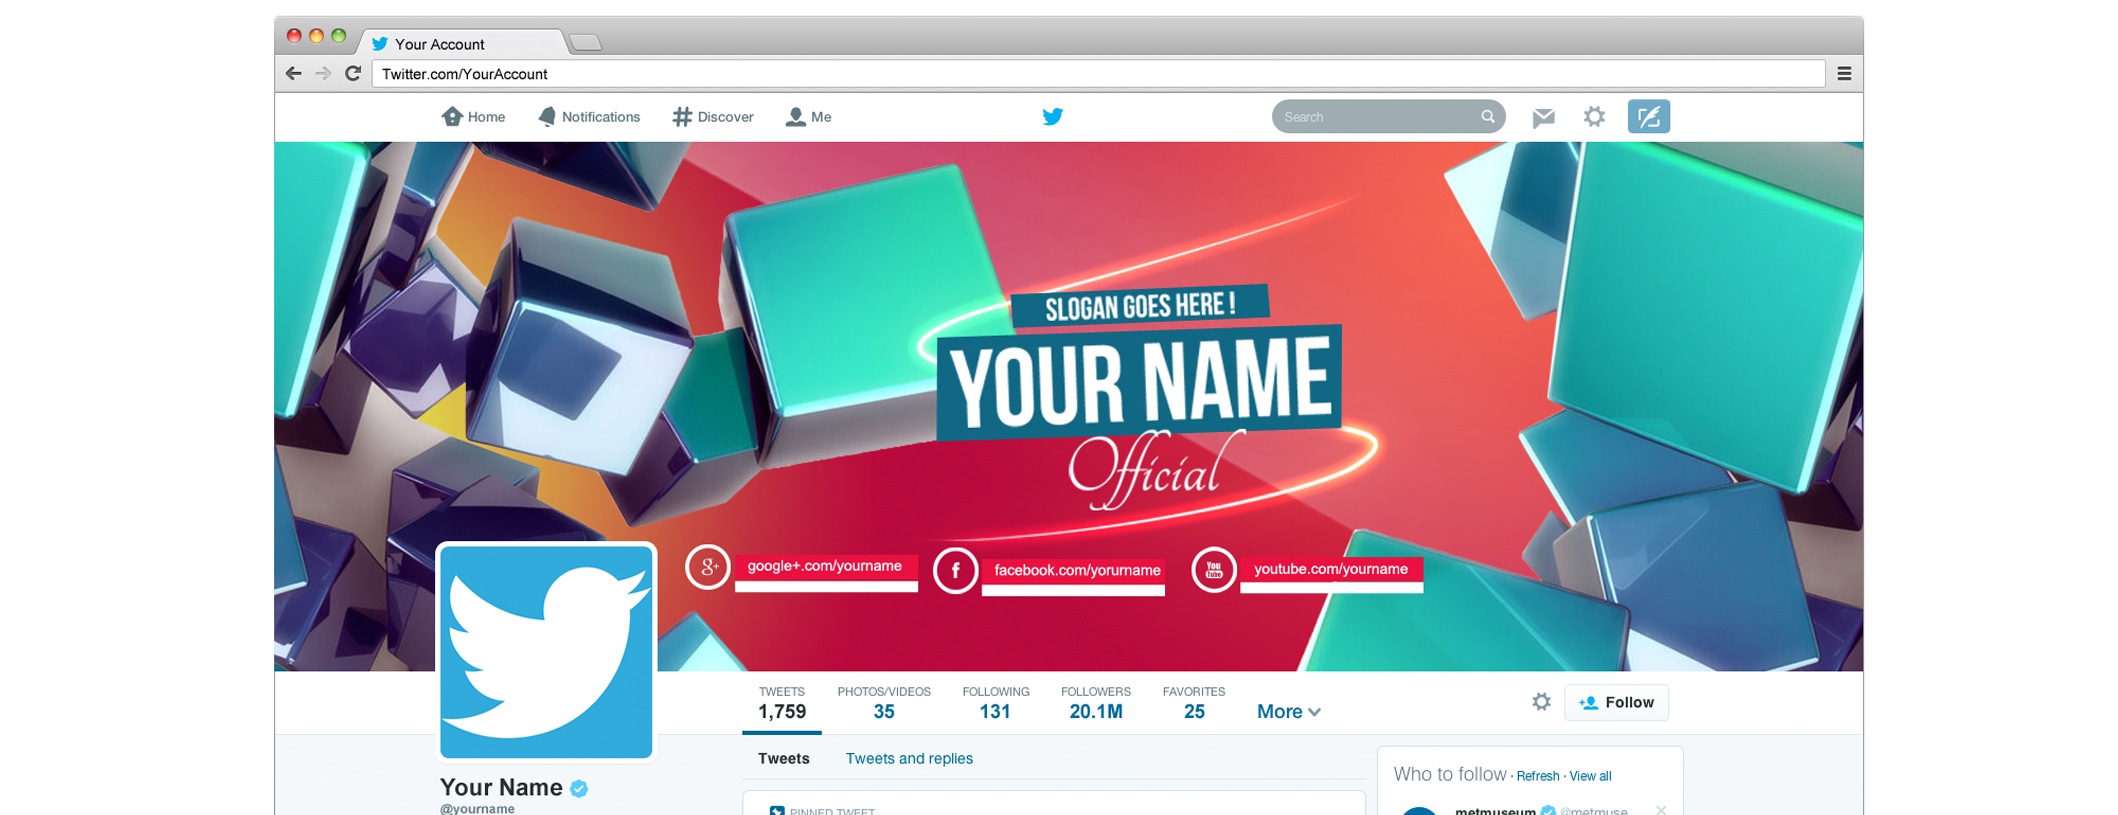 14 Twitter Cover Template PSD Images - Twitter Header Template 2014